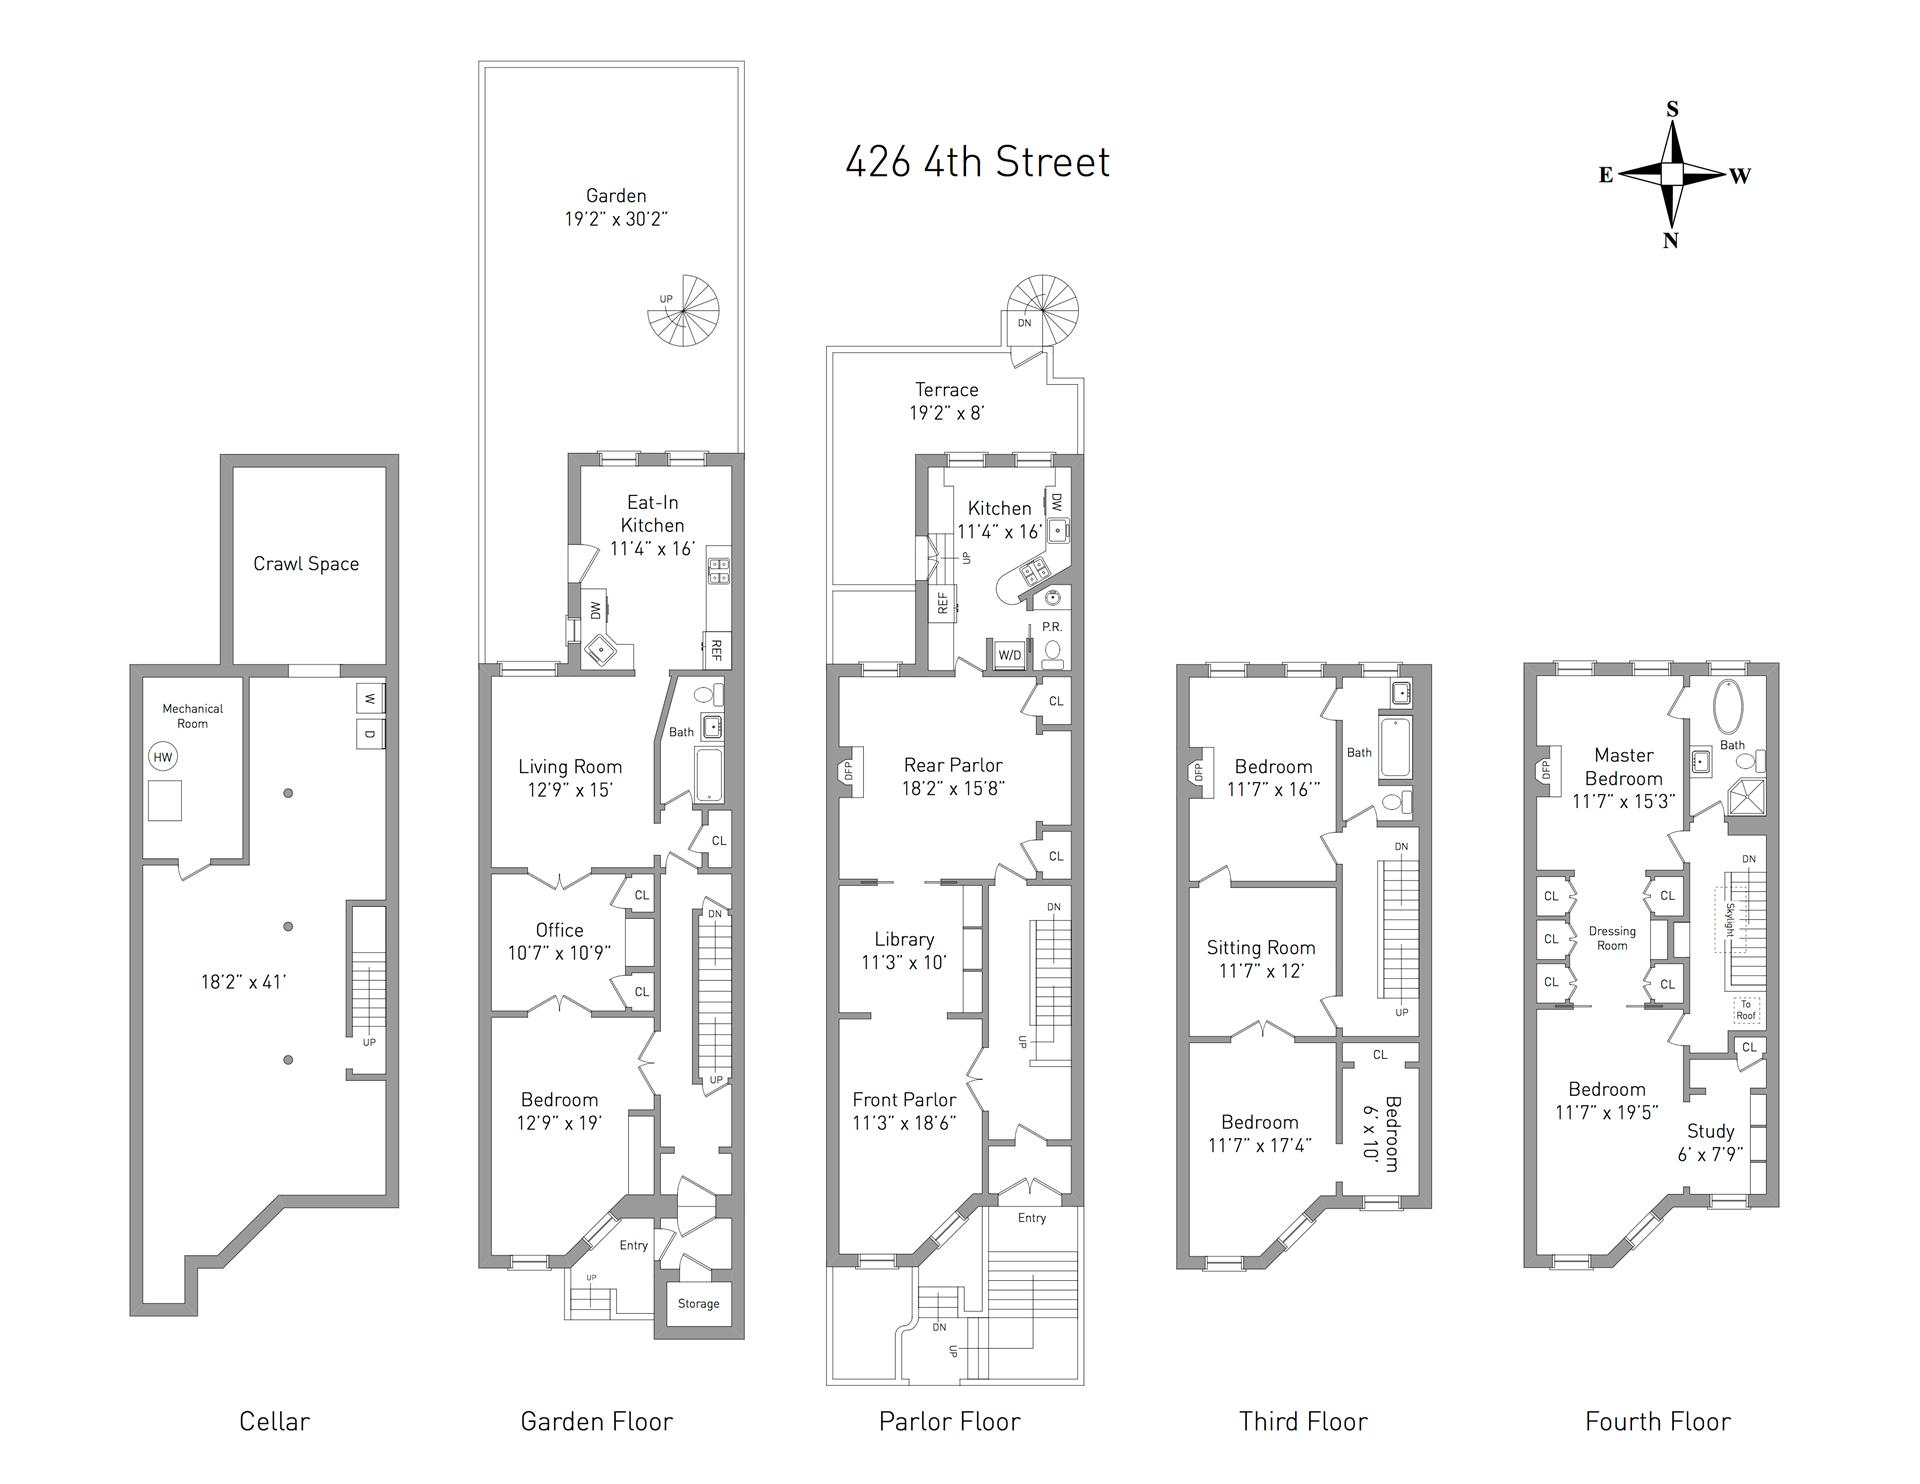 Floor plan of 426 4th St - Park Slope, New York